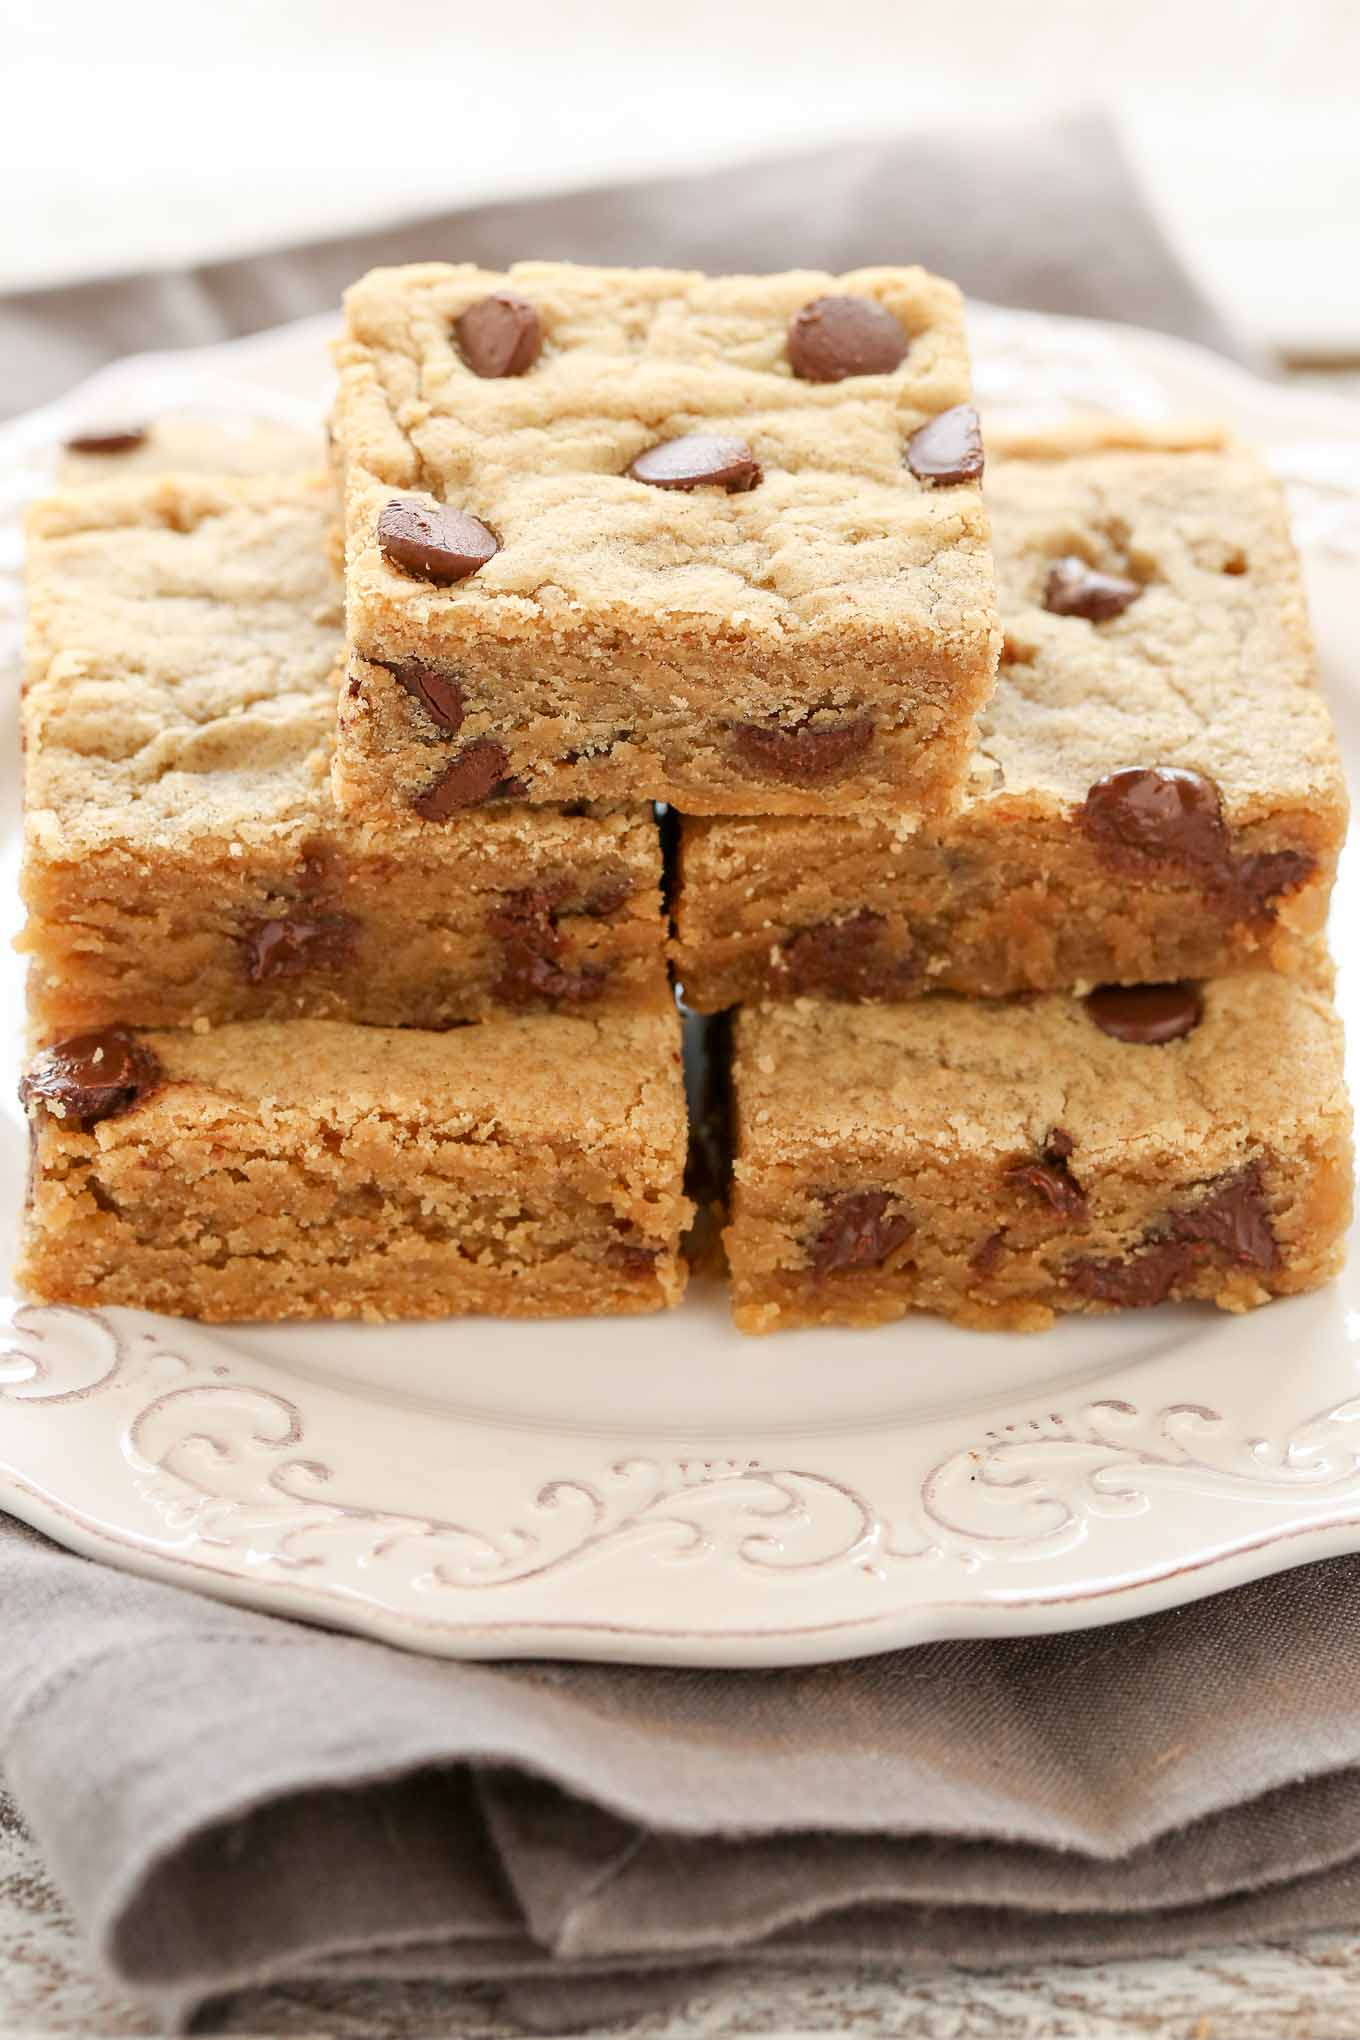 These Peanut Butter Chocolate Chip Blondies are incredibly easy to make, dense, chewy, and loaded with peanut butter and chocolate chips. The perfect easy dessert to enjoy any time of year!